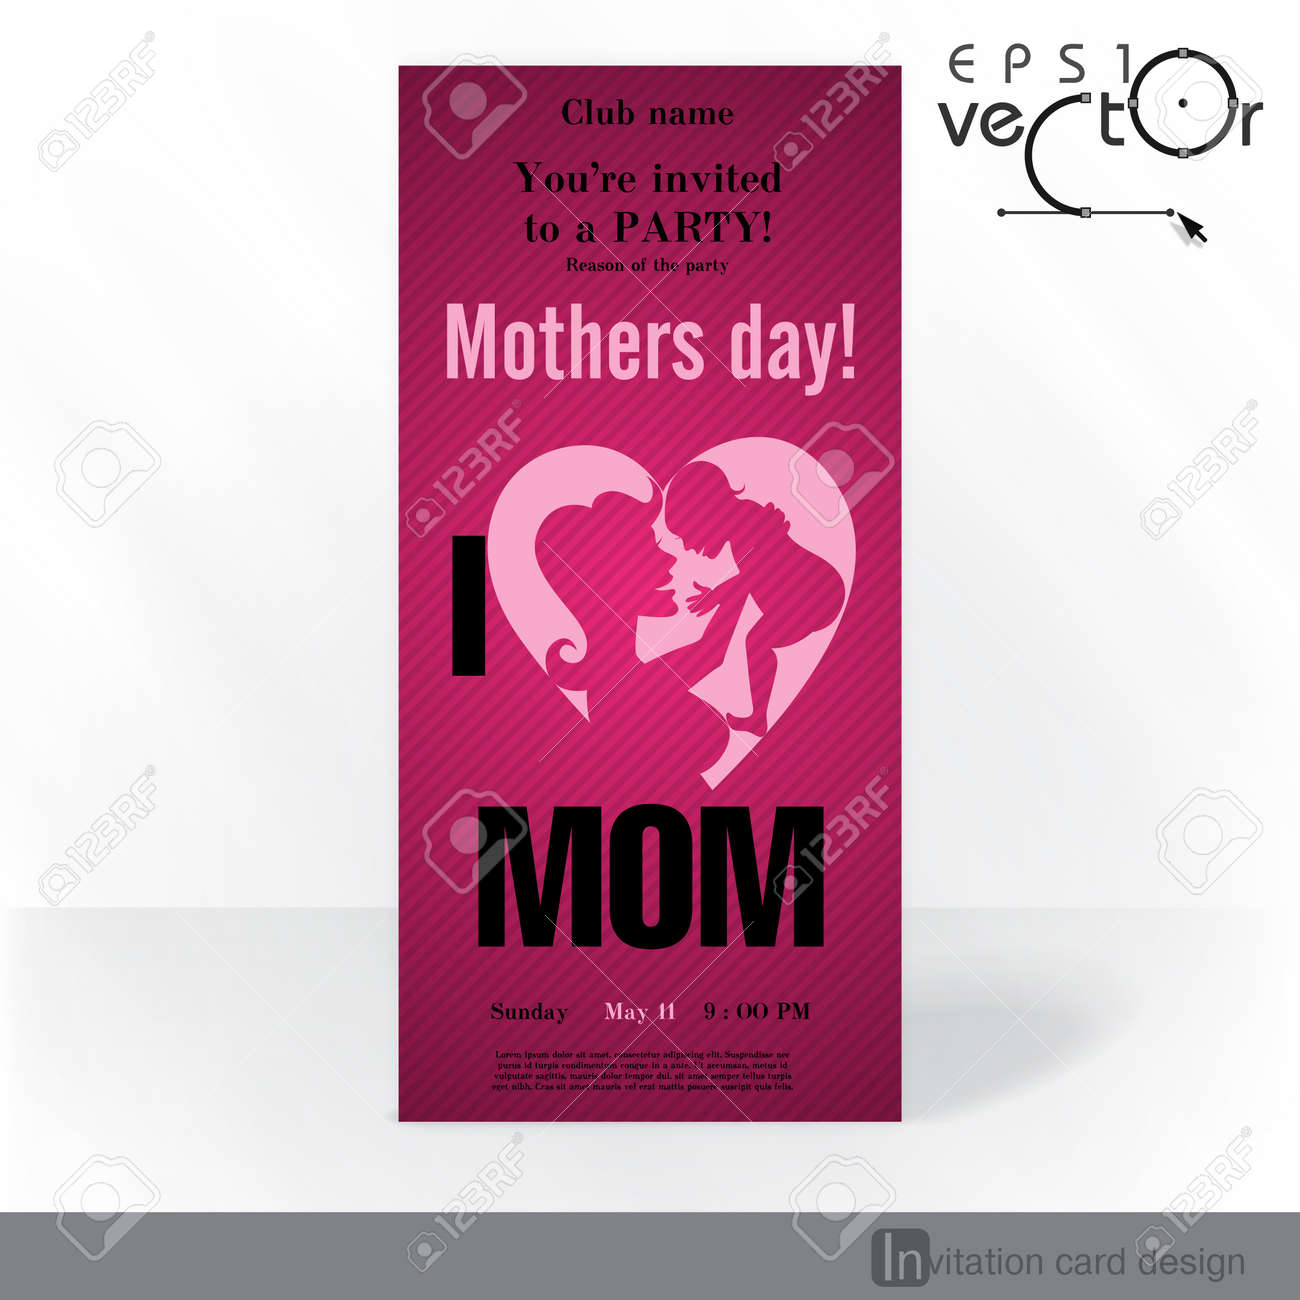 party invitation card design template happy mothers day royalty